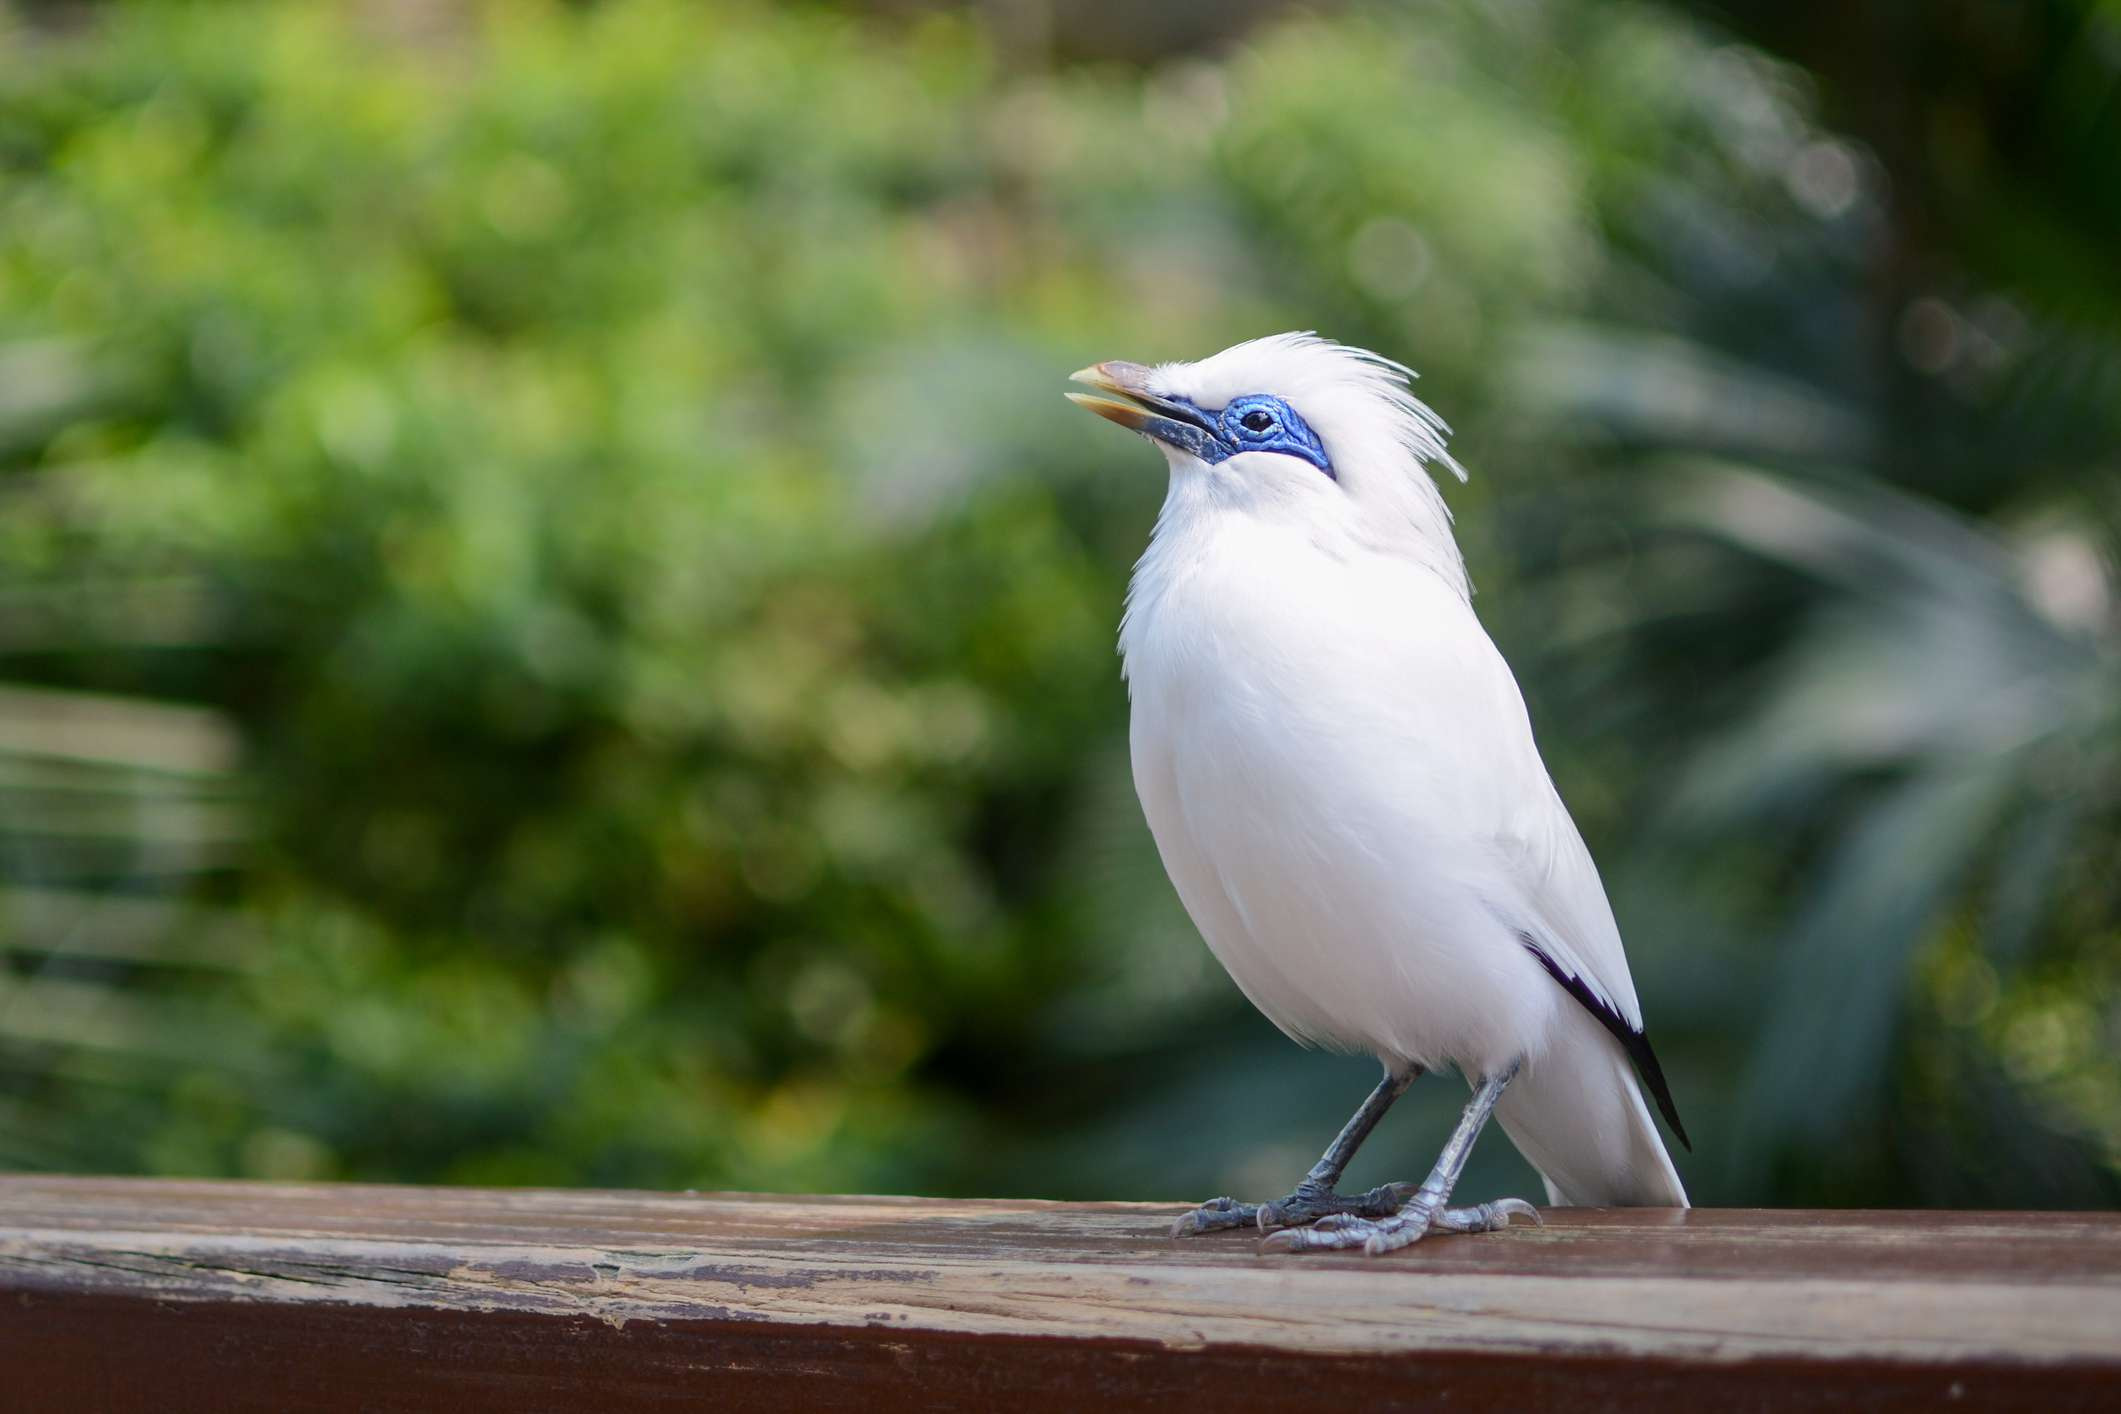 critically endangered Bali mynah perched on a wooden ledge in front of vegetation